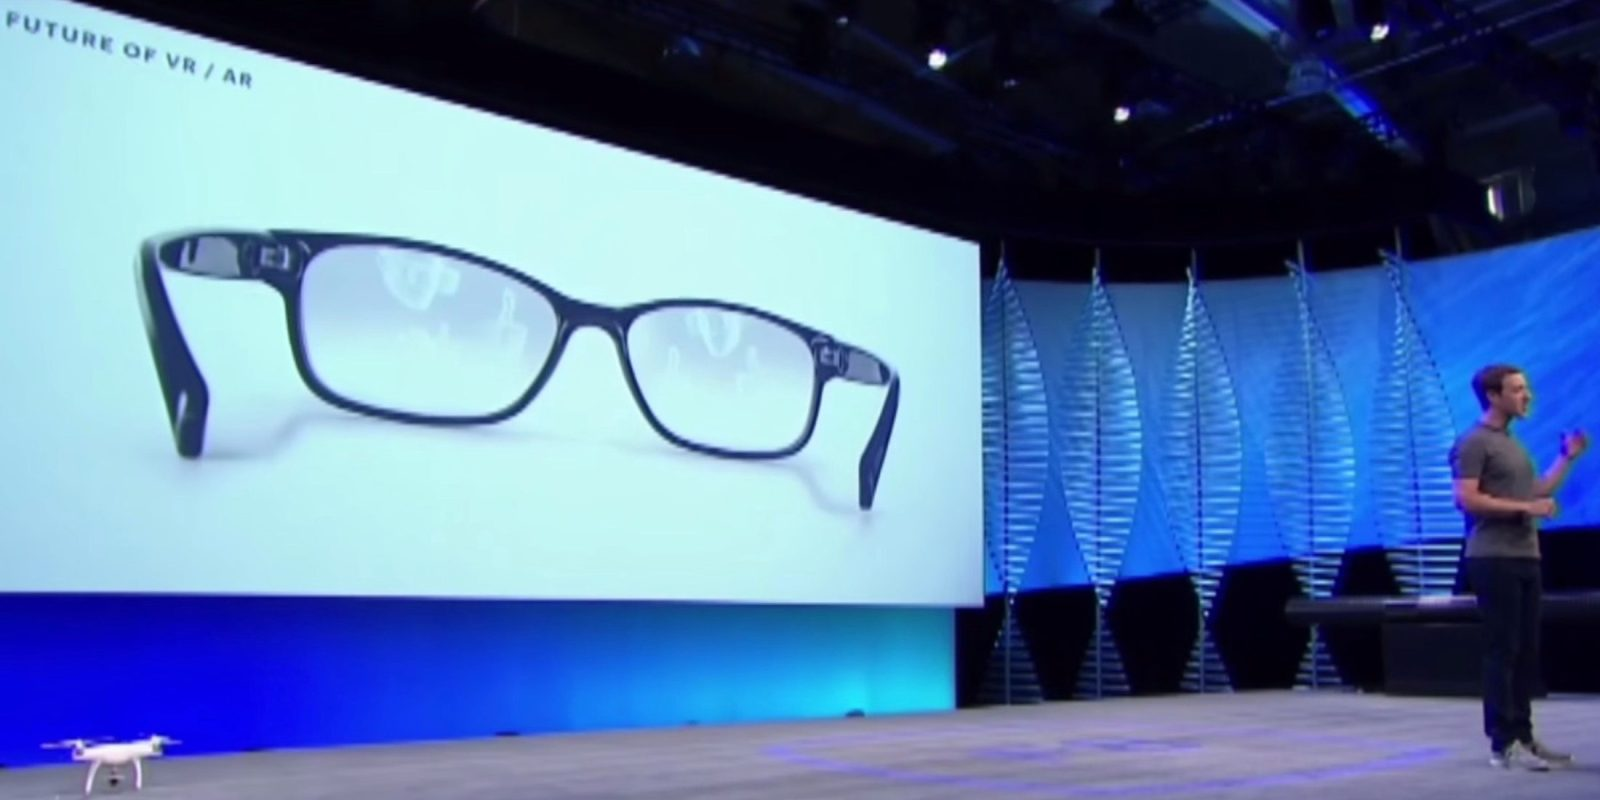 Report: Facebook targeting 2023-25 for 'Orion' smart glasses that replace phones